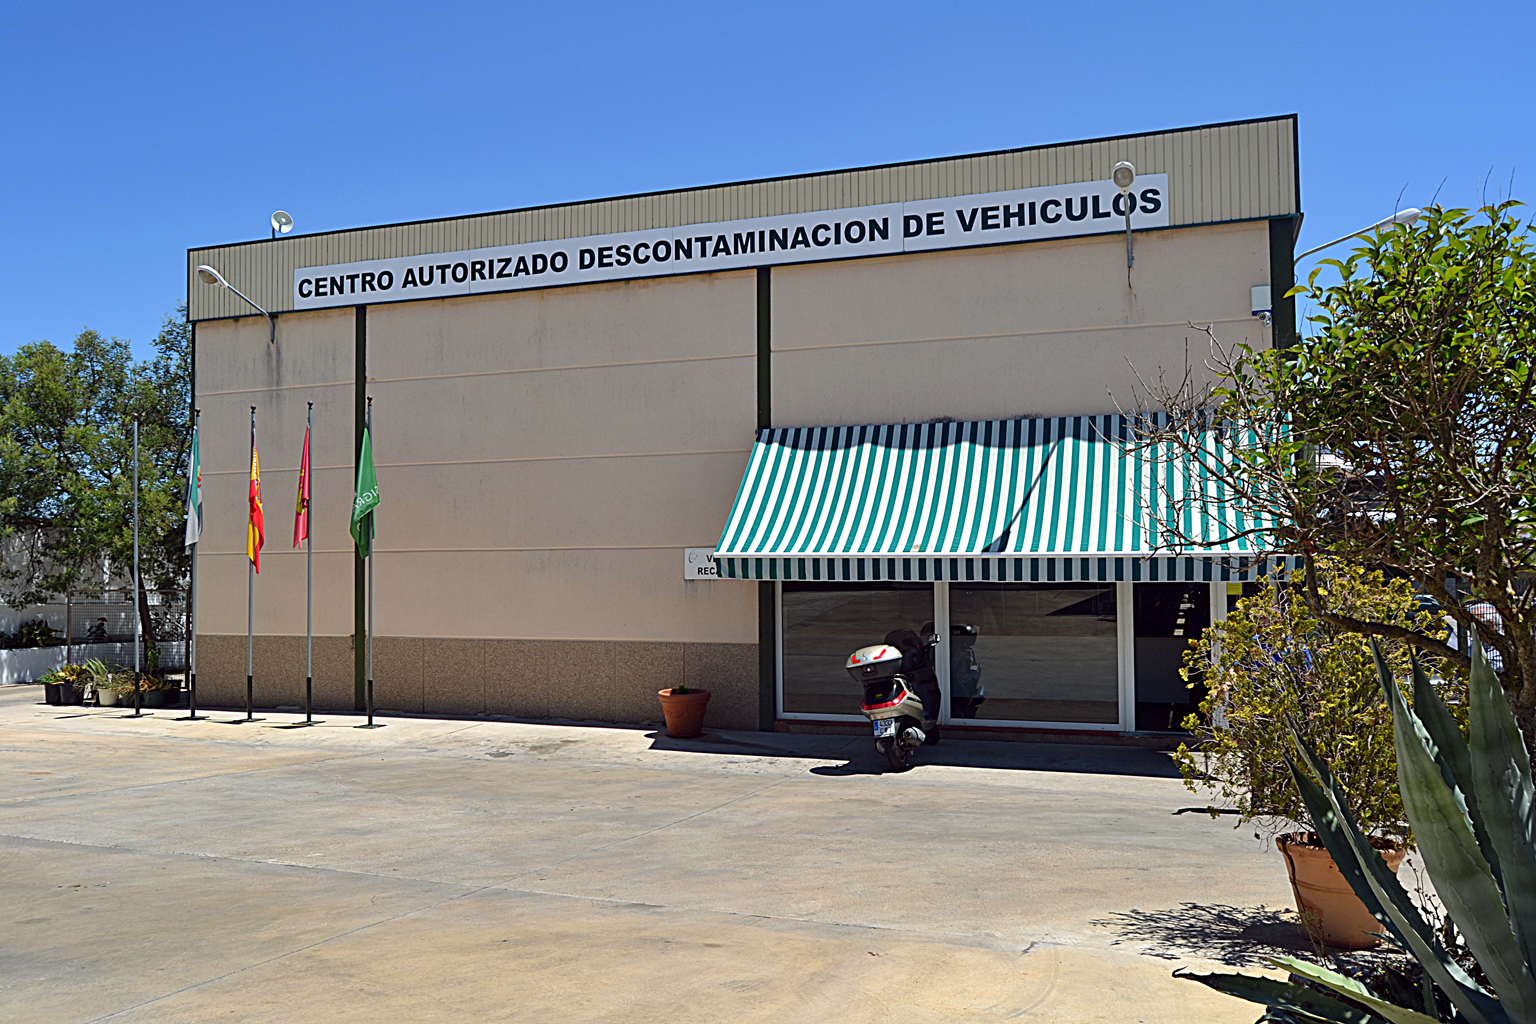 descontaminacion de vehiculos